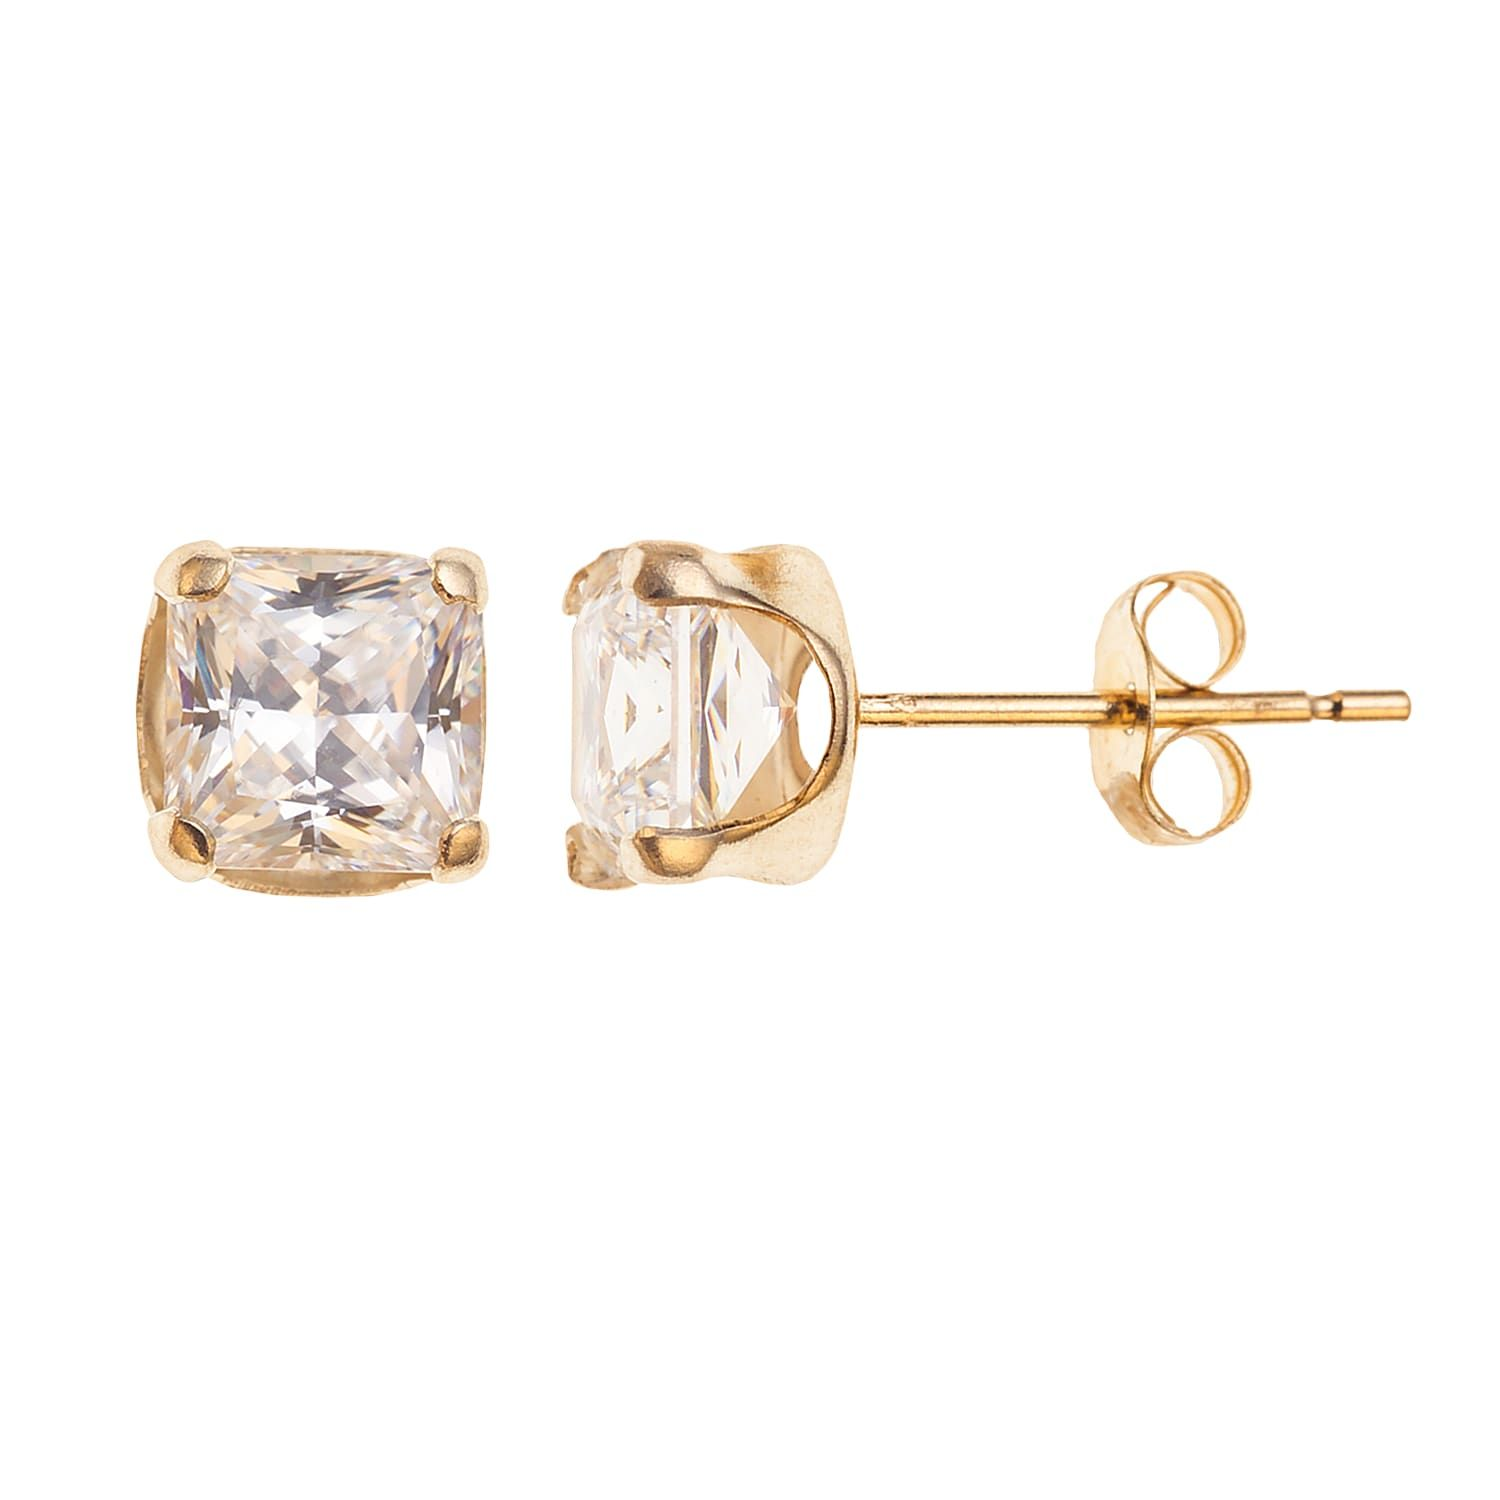 10k Gold Cubic Zirconia Square Stud Earrings Square Earrings Studs Stud Earrings Square Stud